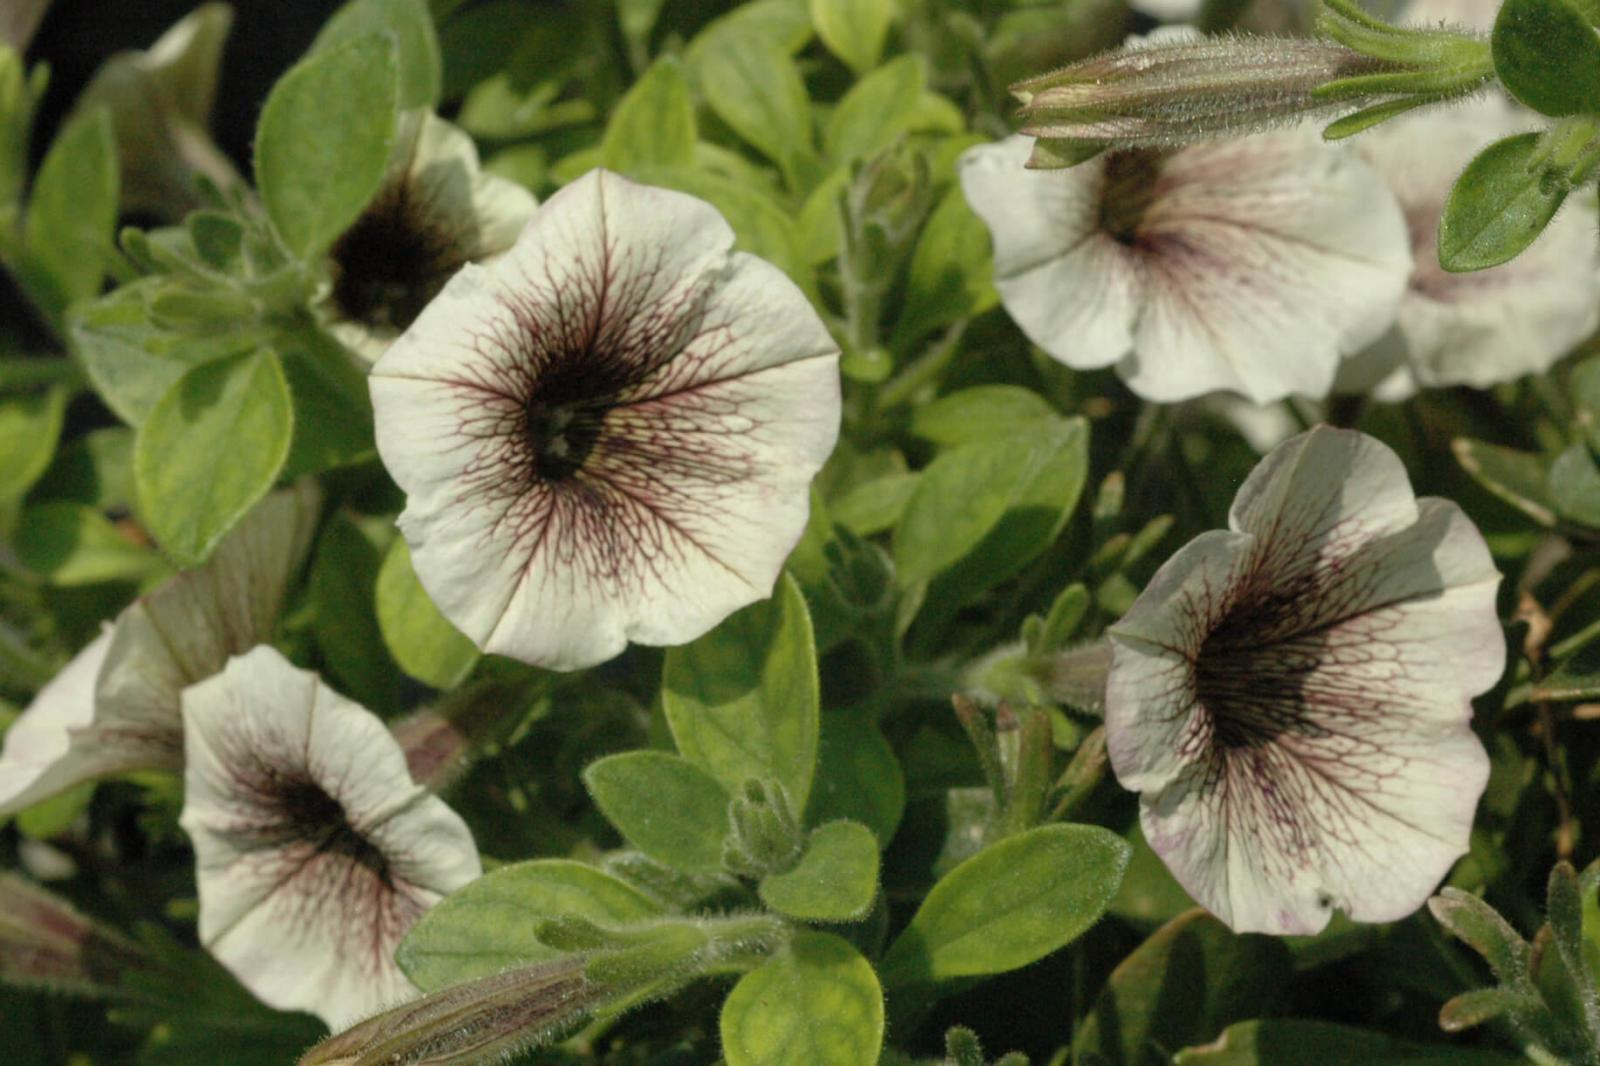 White Russian is a new petunia from Proven Winners.